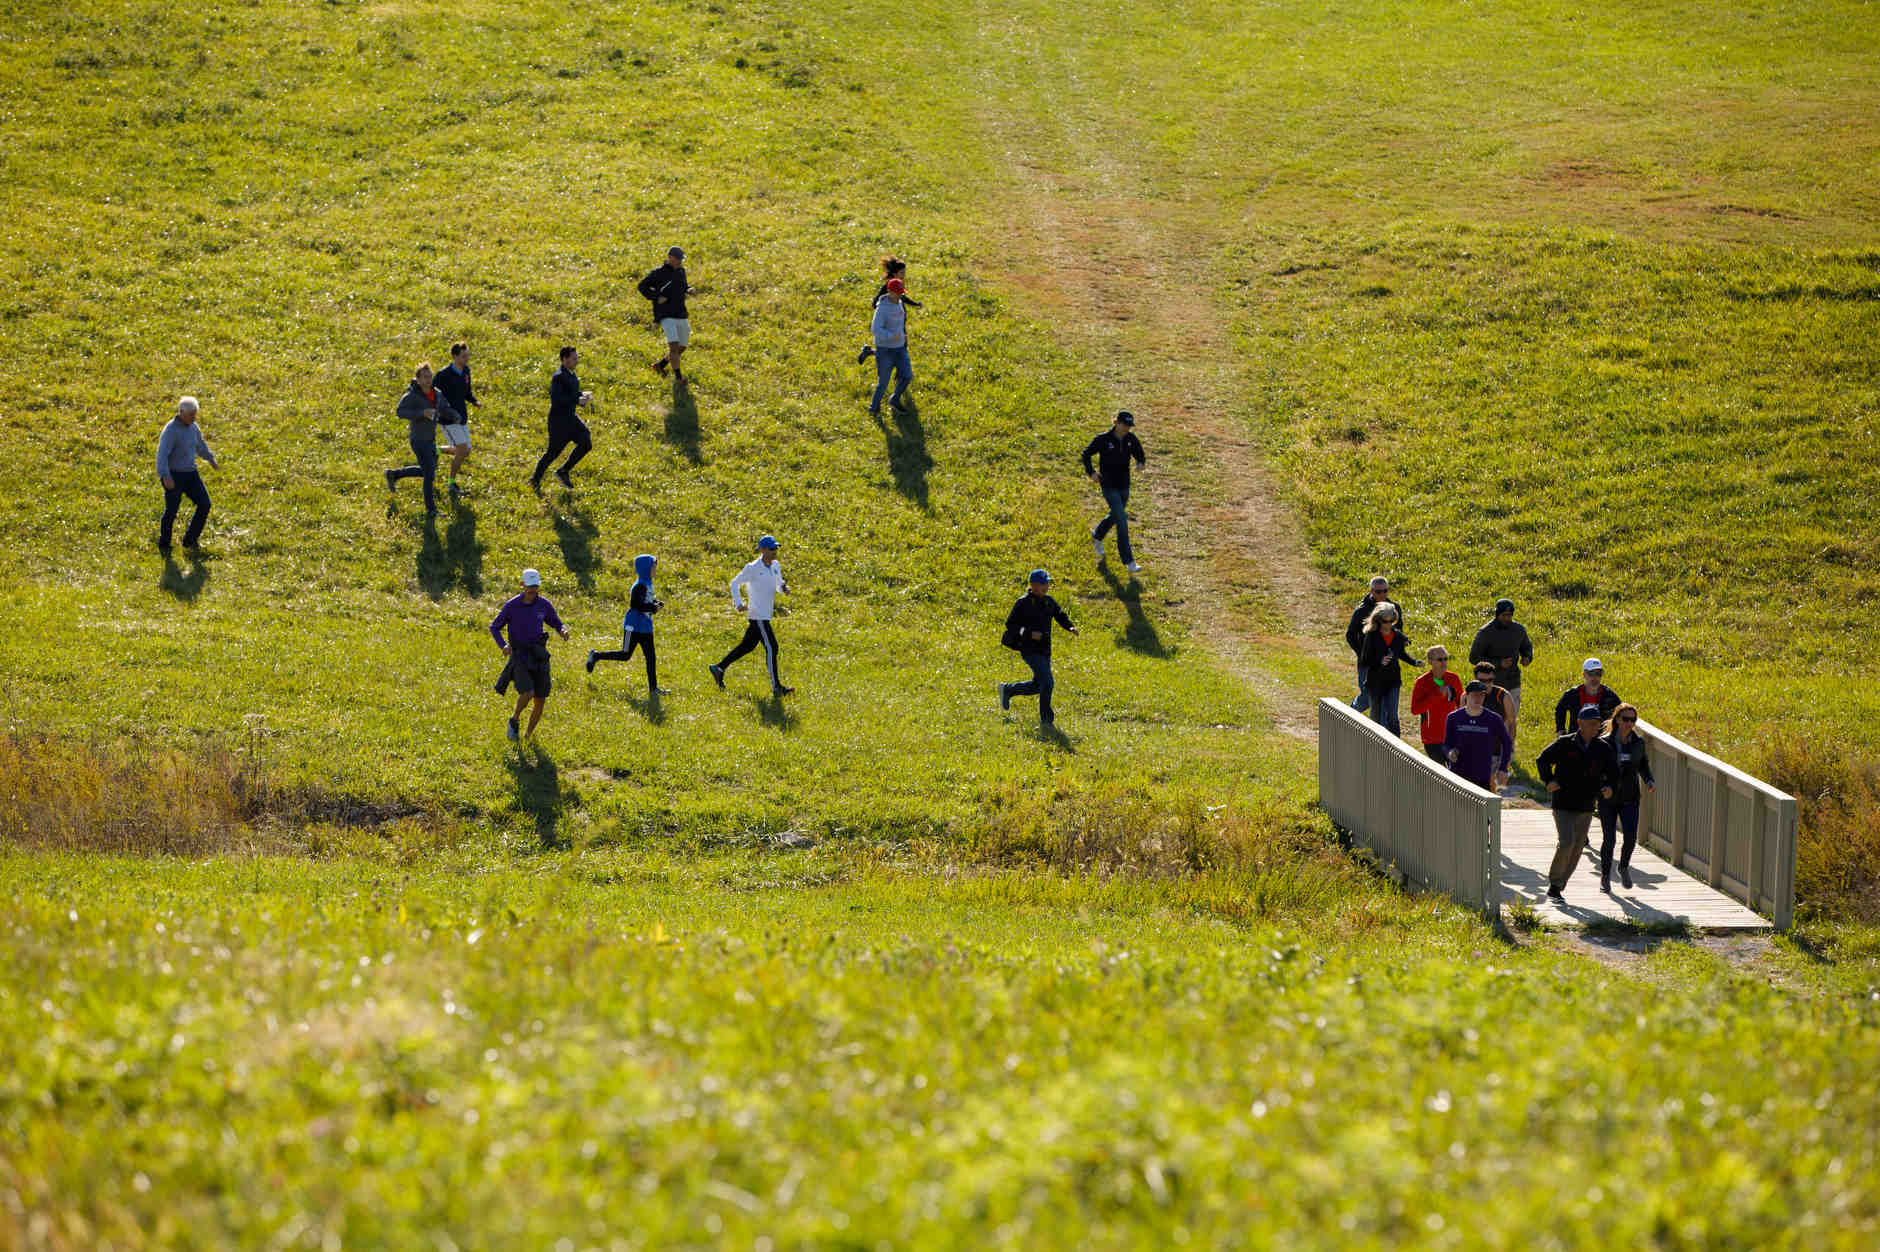 Spectators race across a field to get a glimpse of runners on the backstretch during the Indiana State Pre-National Cross Country Invitational in Terre Haute, Indiana on Saturday, Oct. 19, 2019. (Photo by James Brosher)